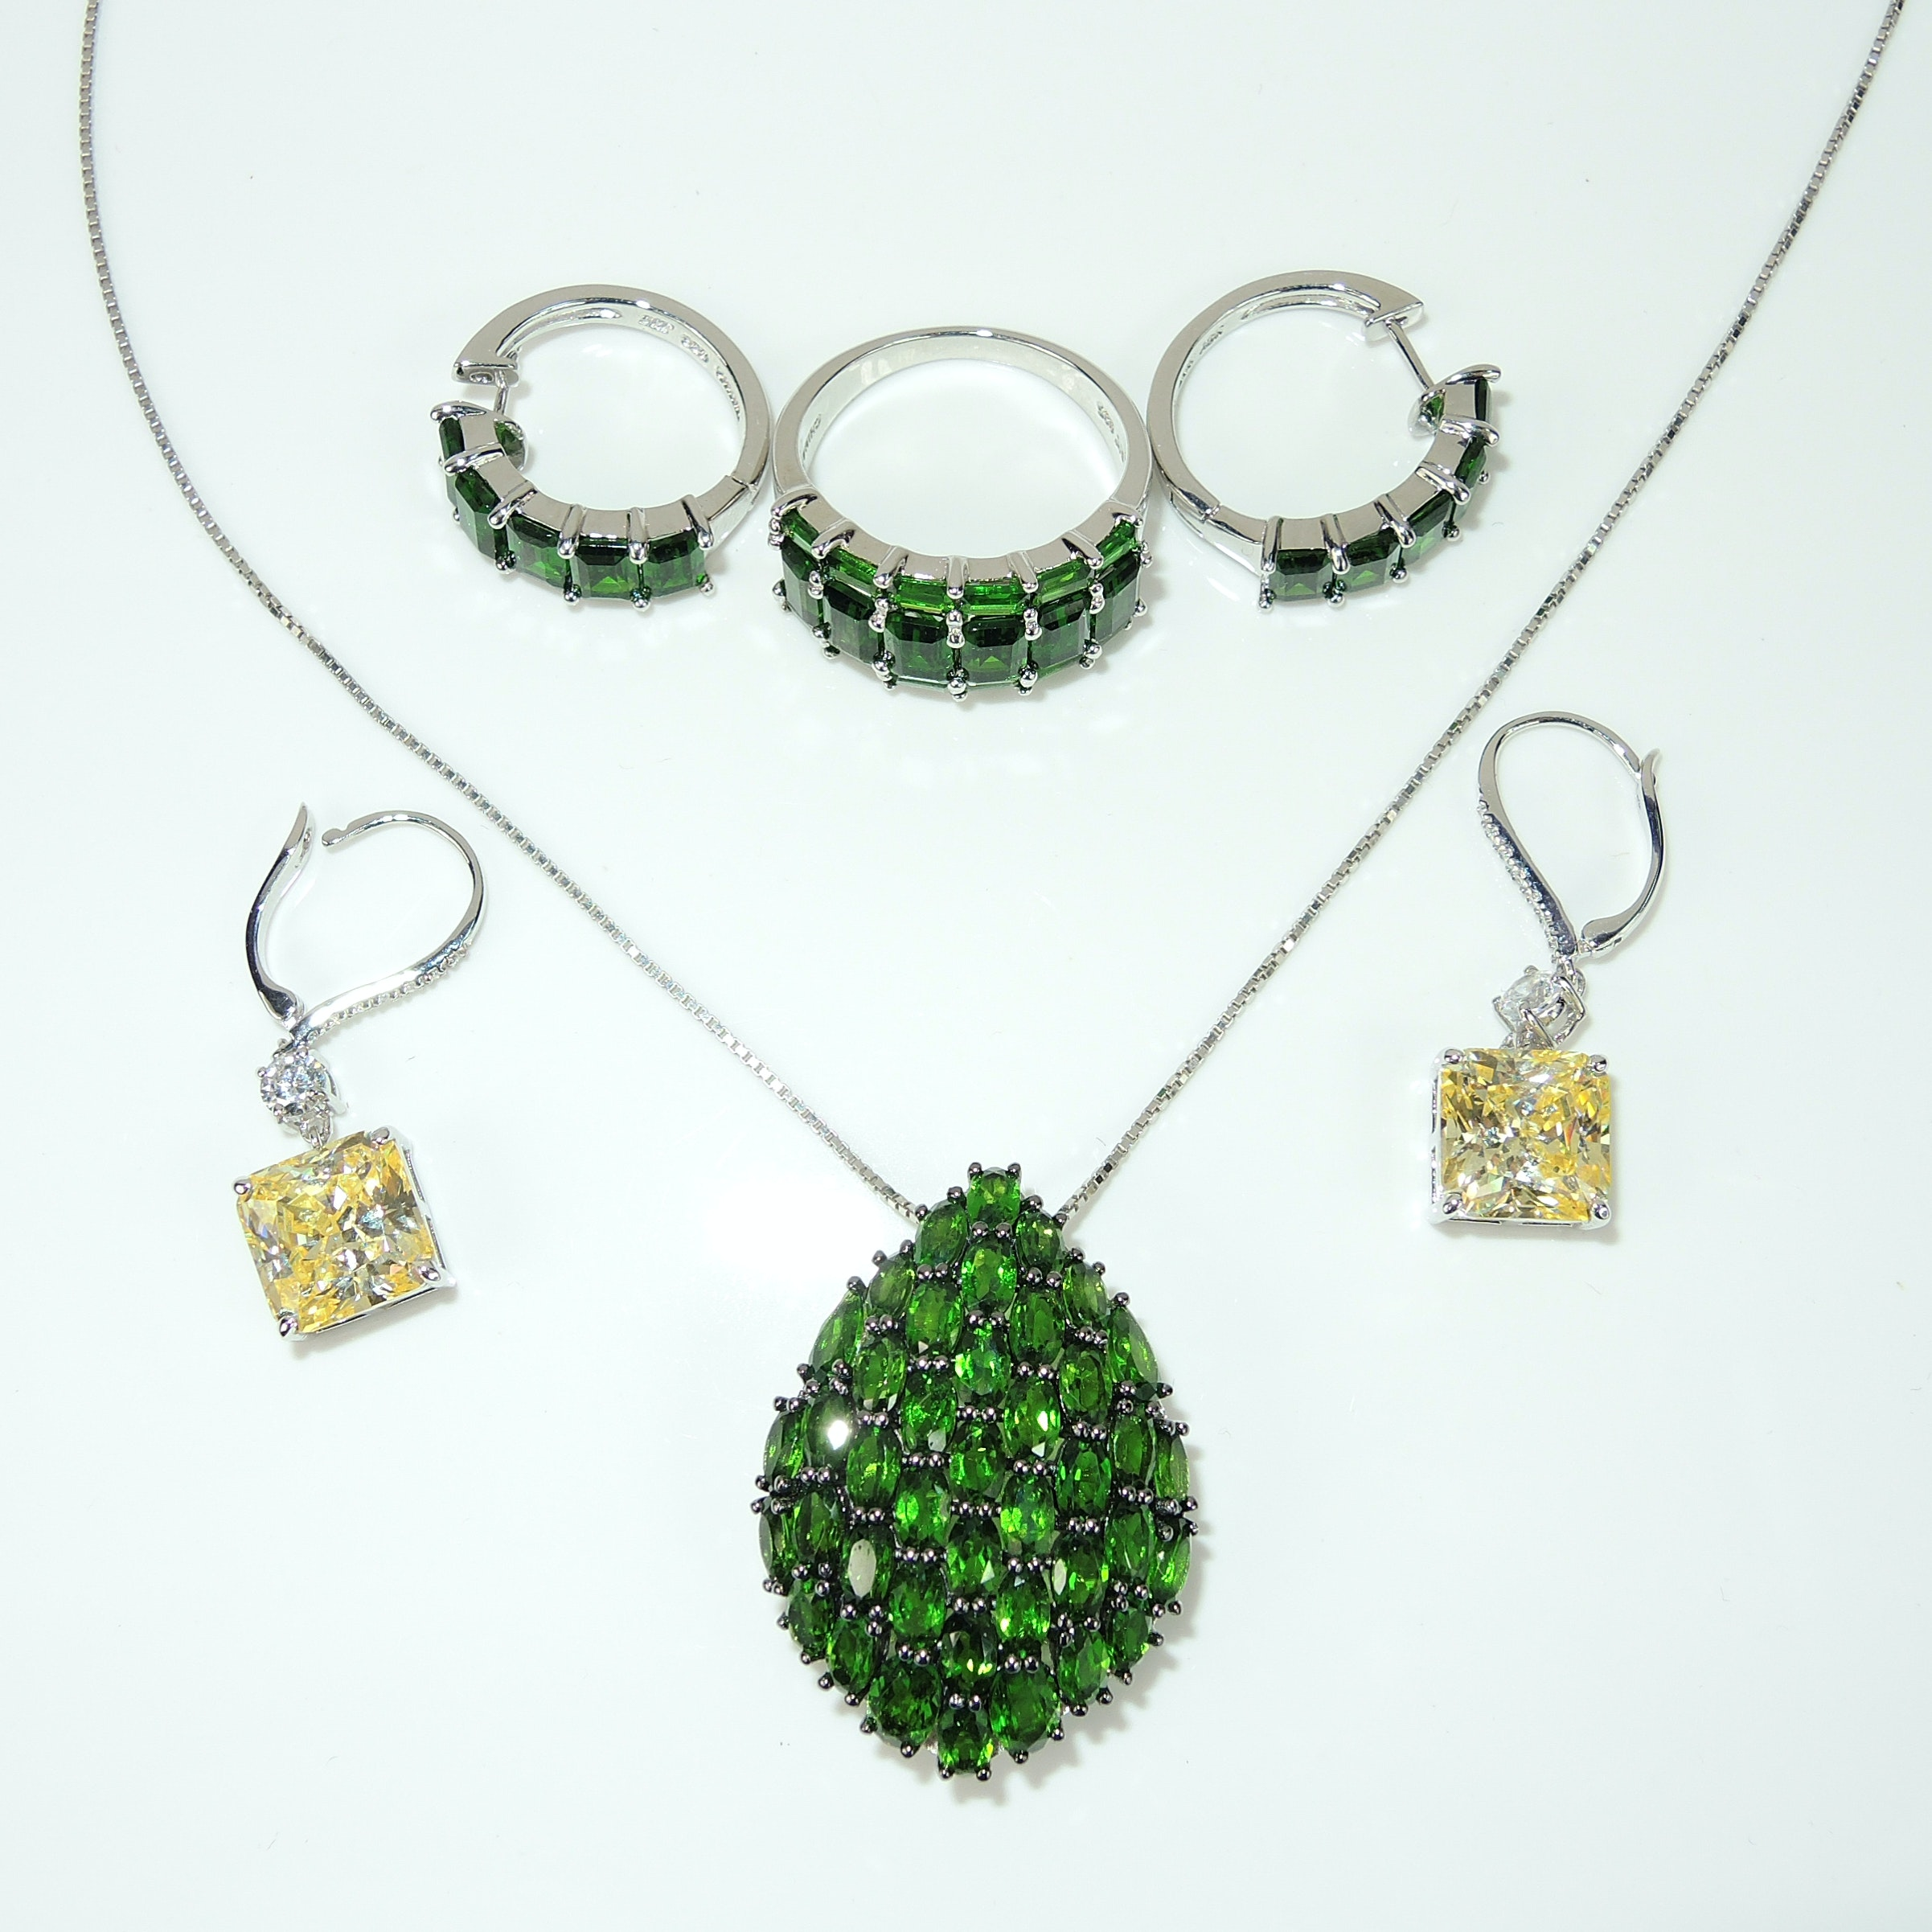 Chrome Diopside Necklace, Earrings and Ring in Sterling Silver